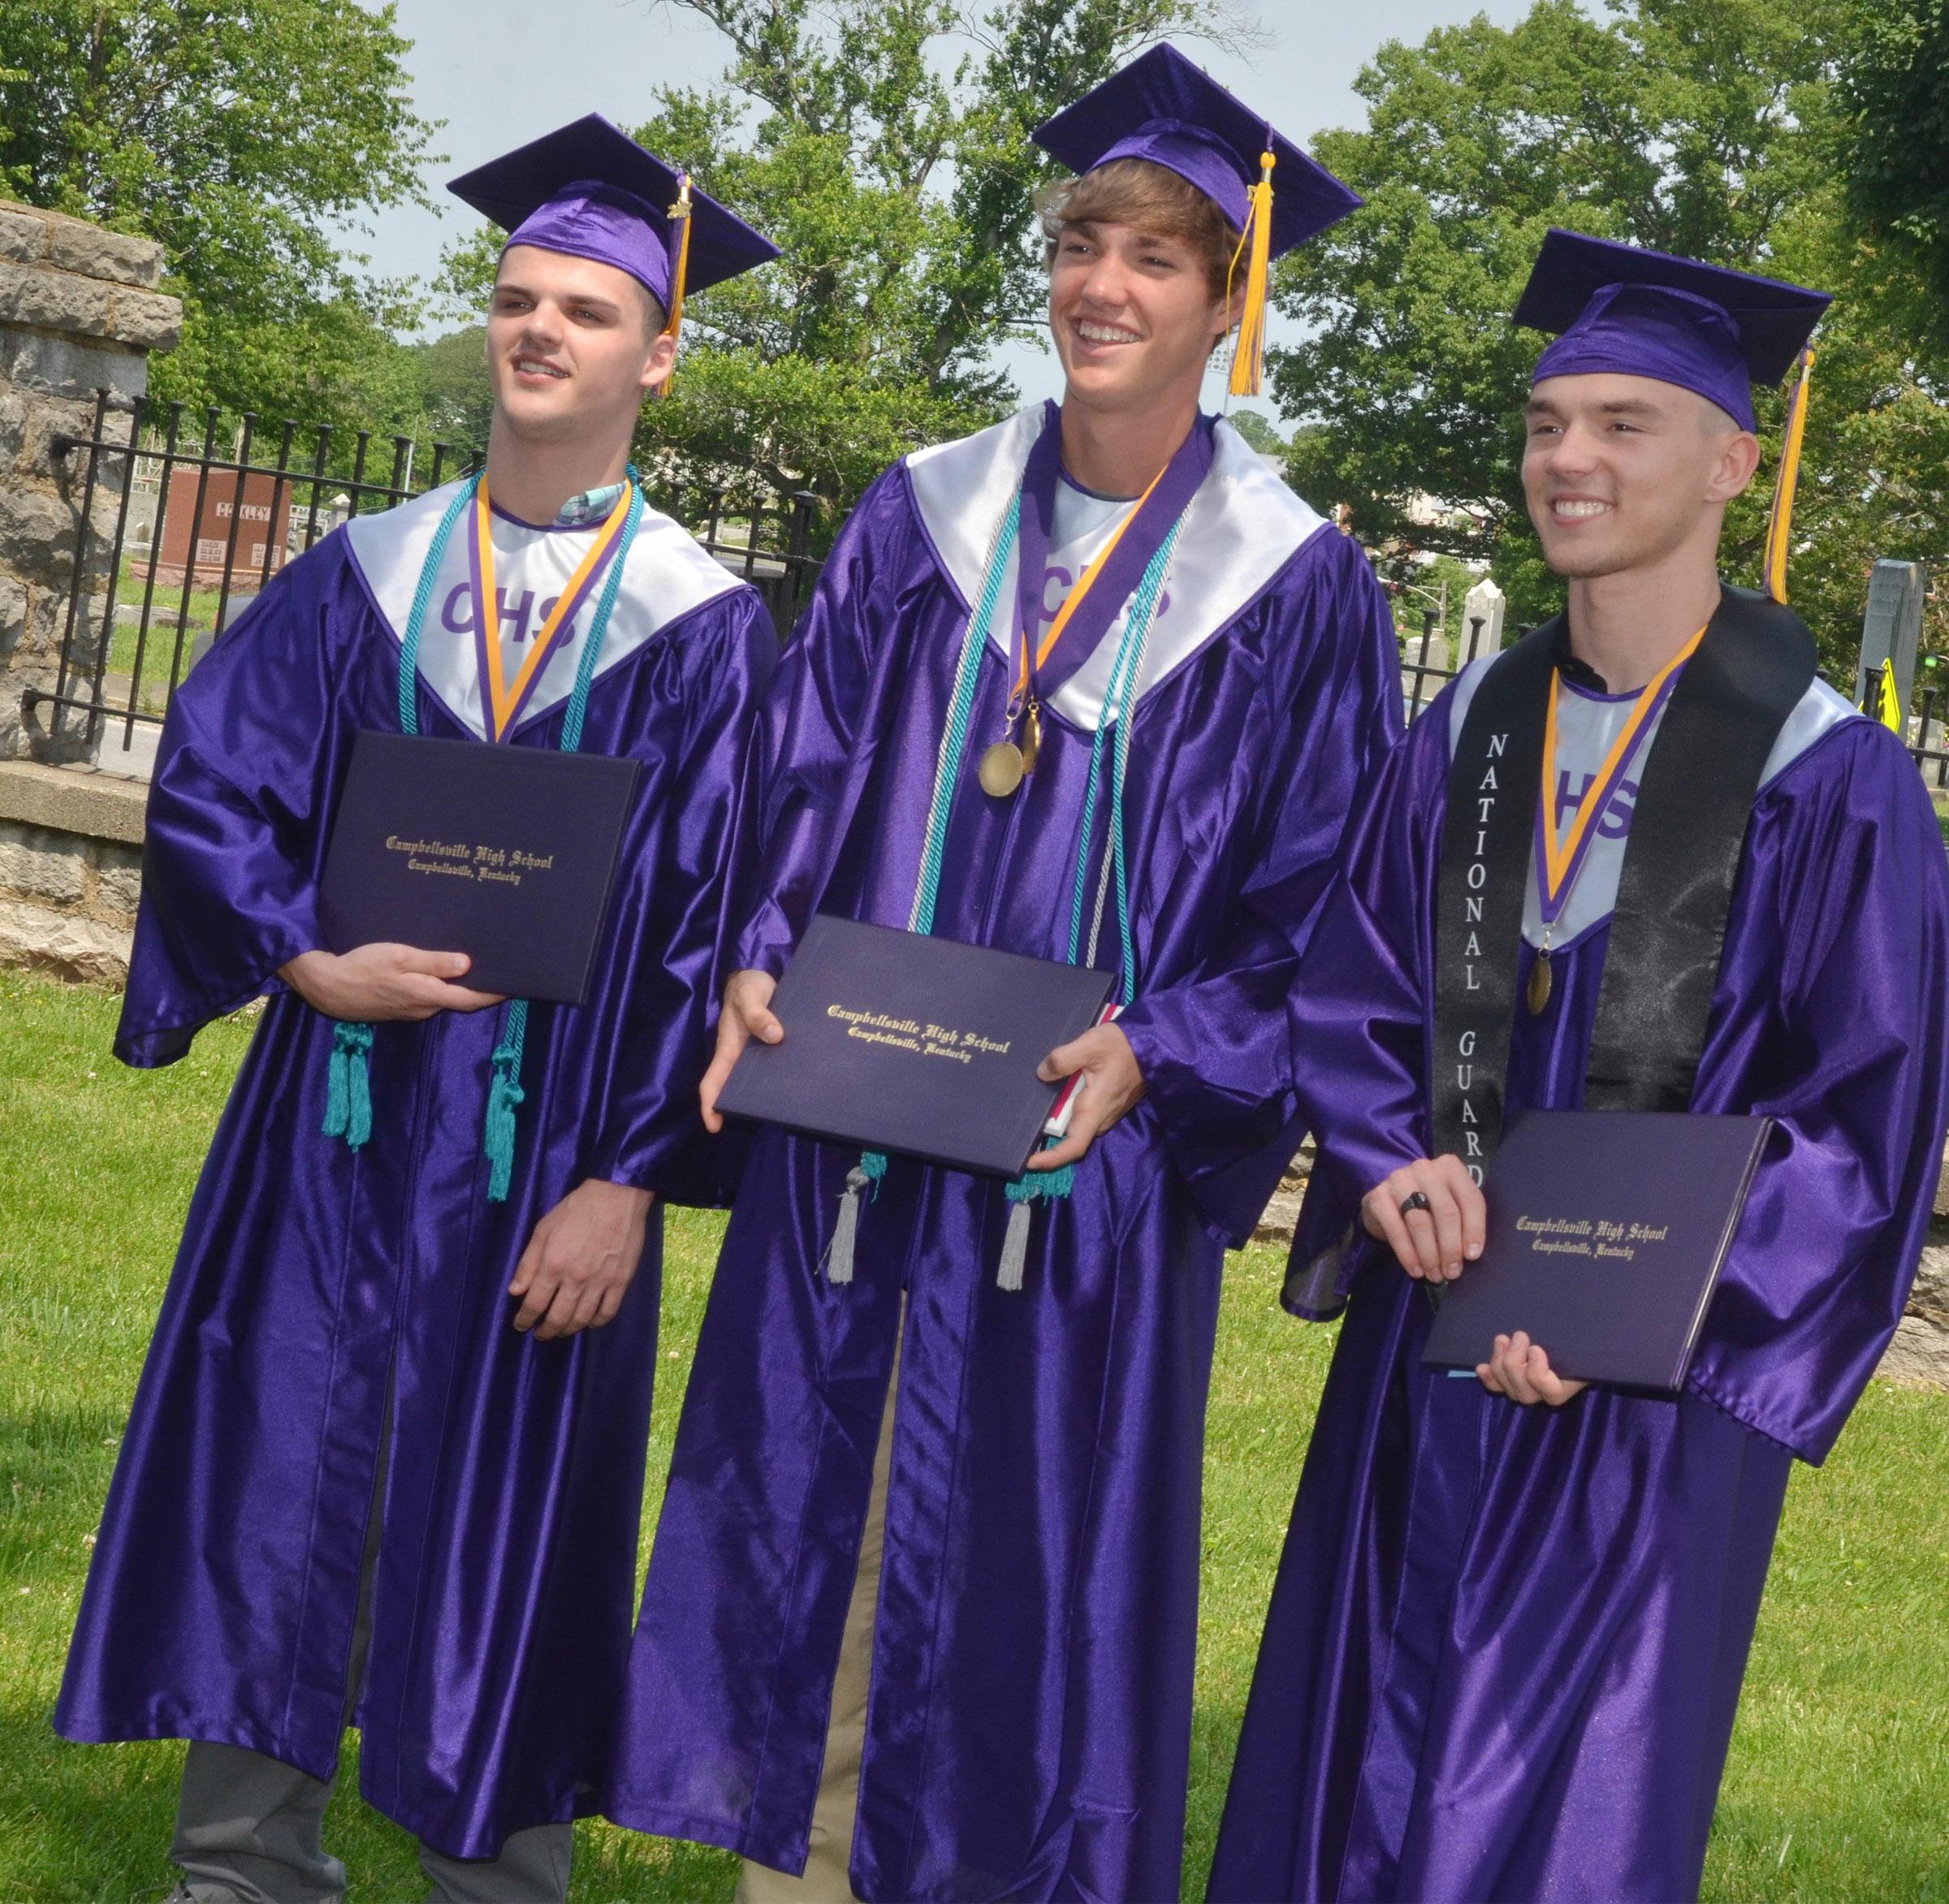 From left, CHS graduates Stone Williams, Zack Bottoms and Jordan Pratt pose for a photo together.